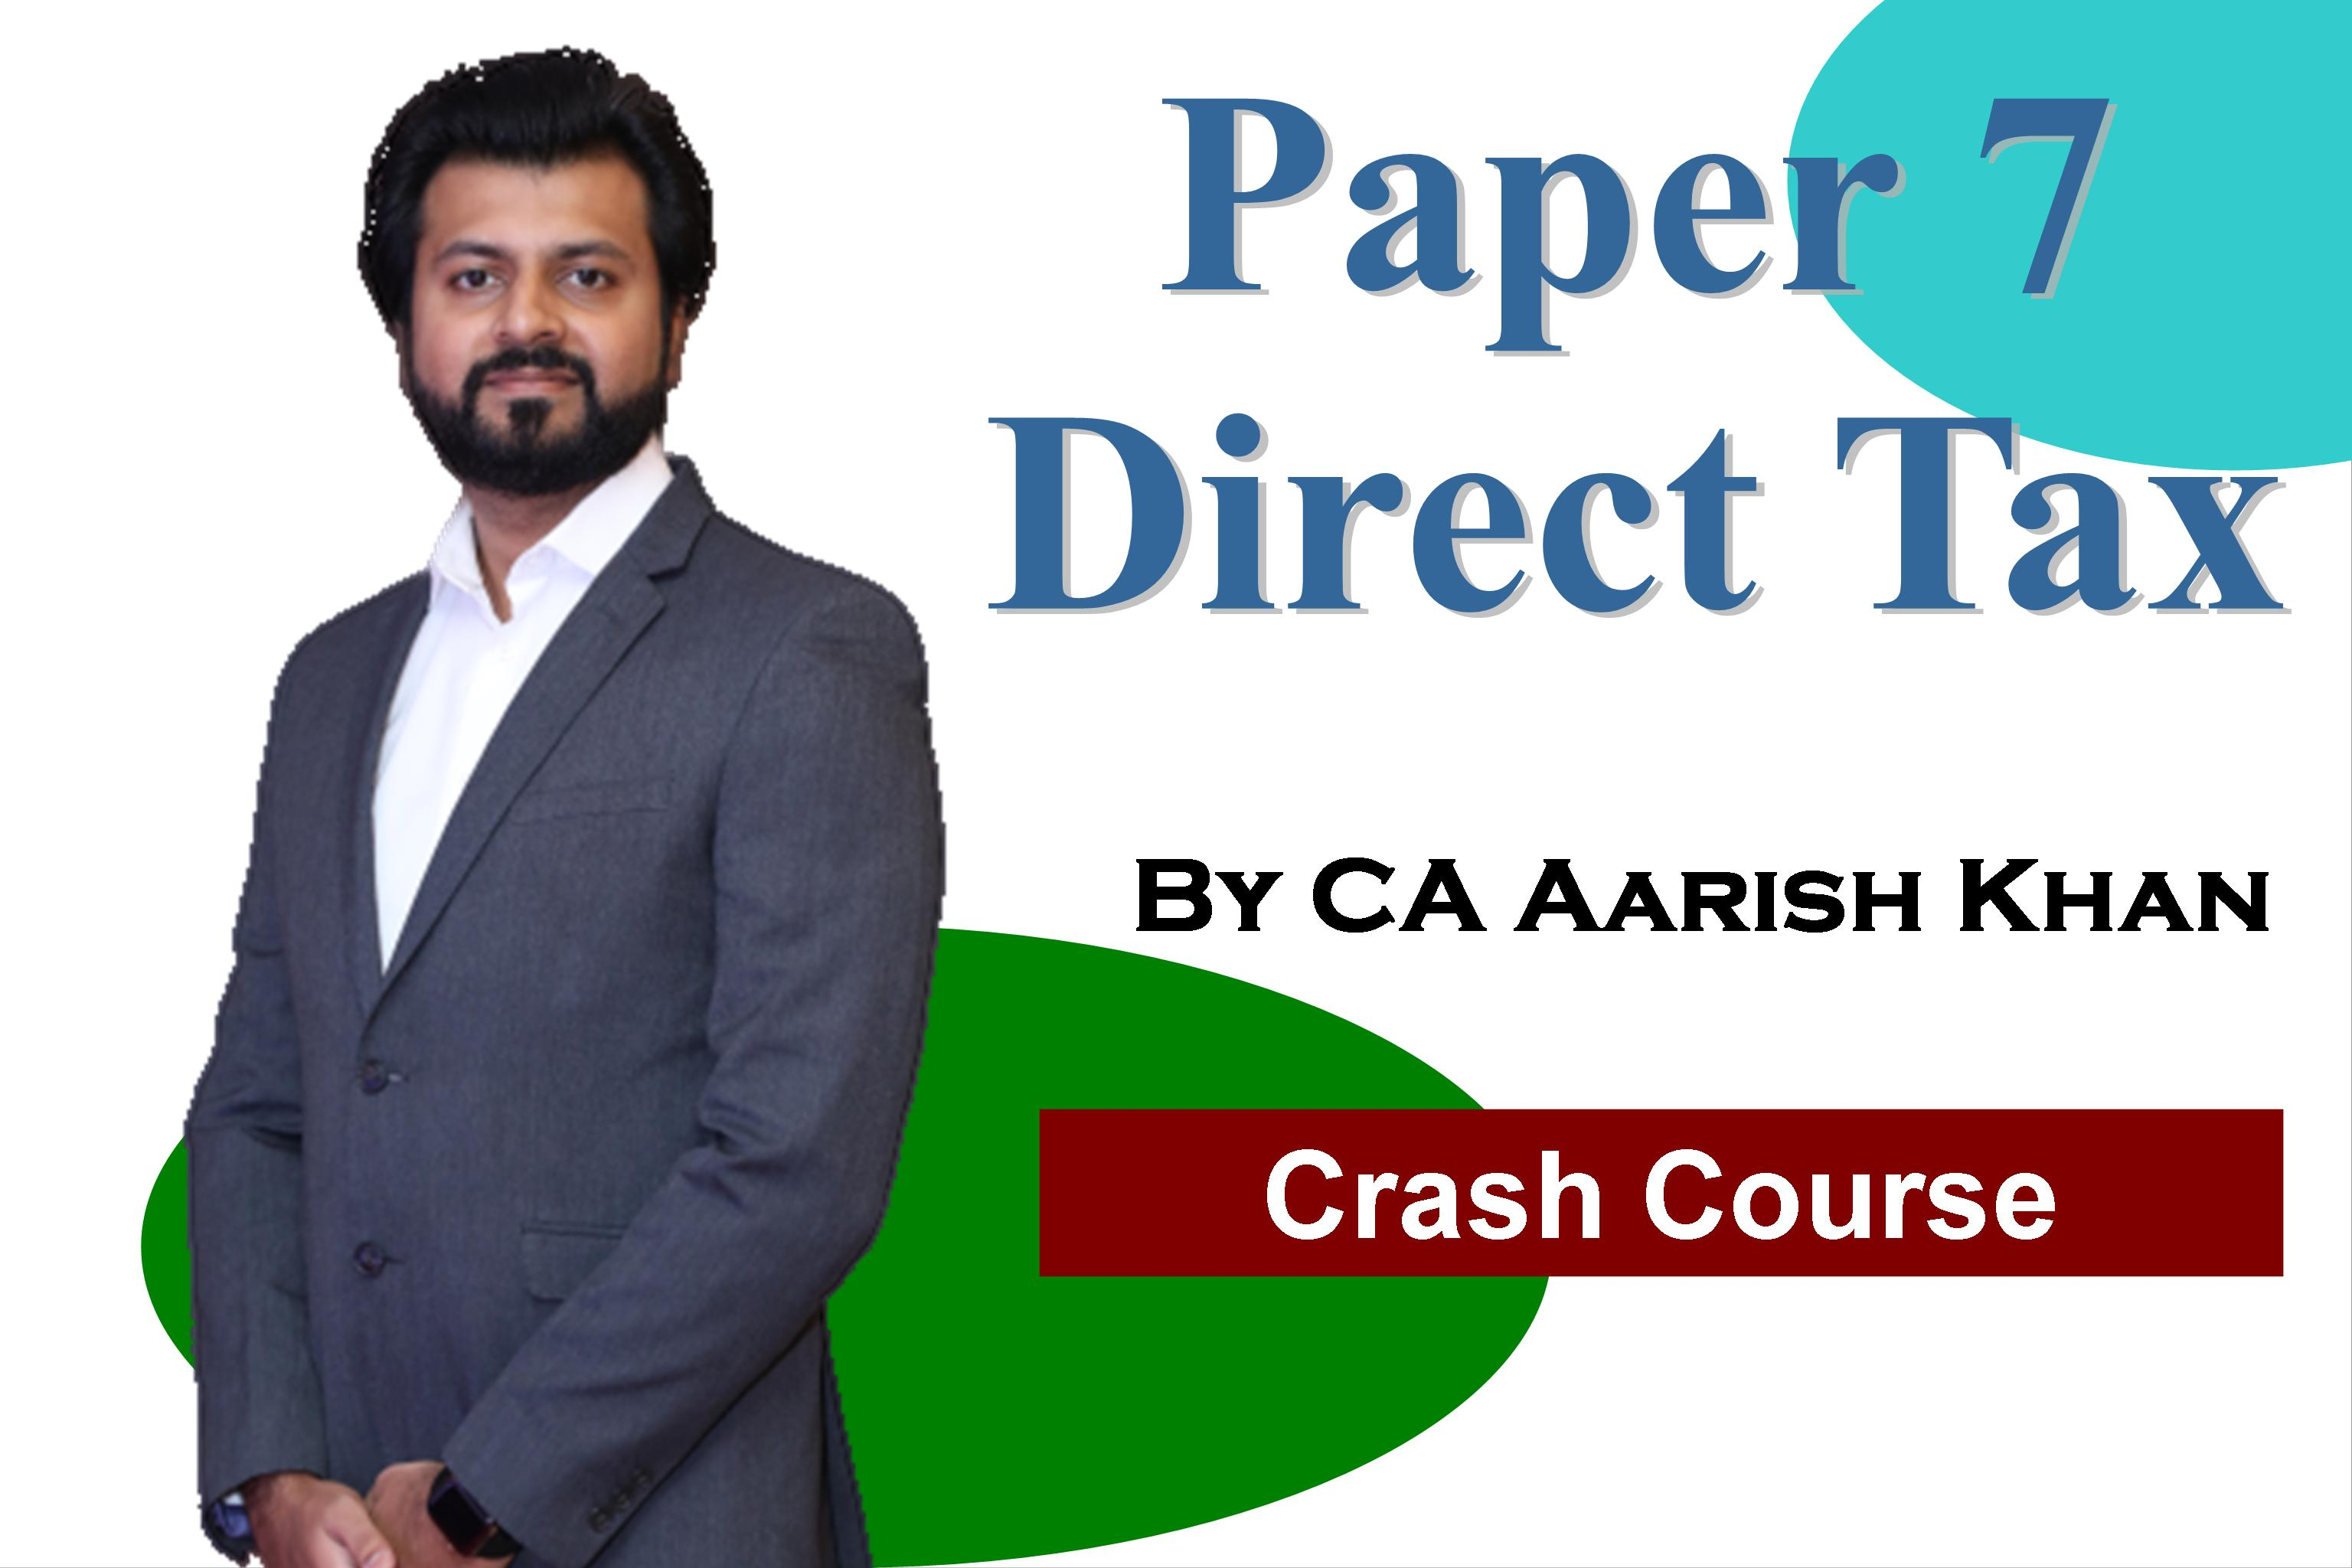 Direct Tax – Crash Course for May 2021